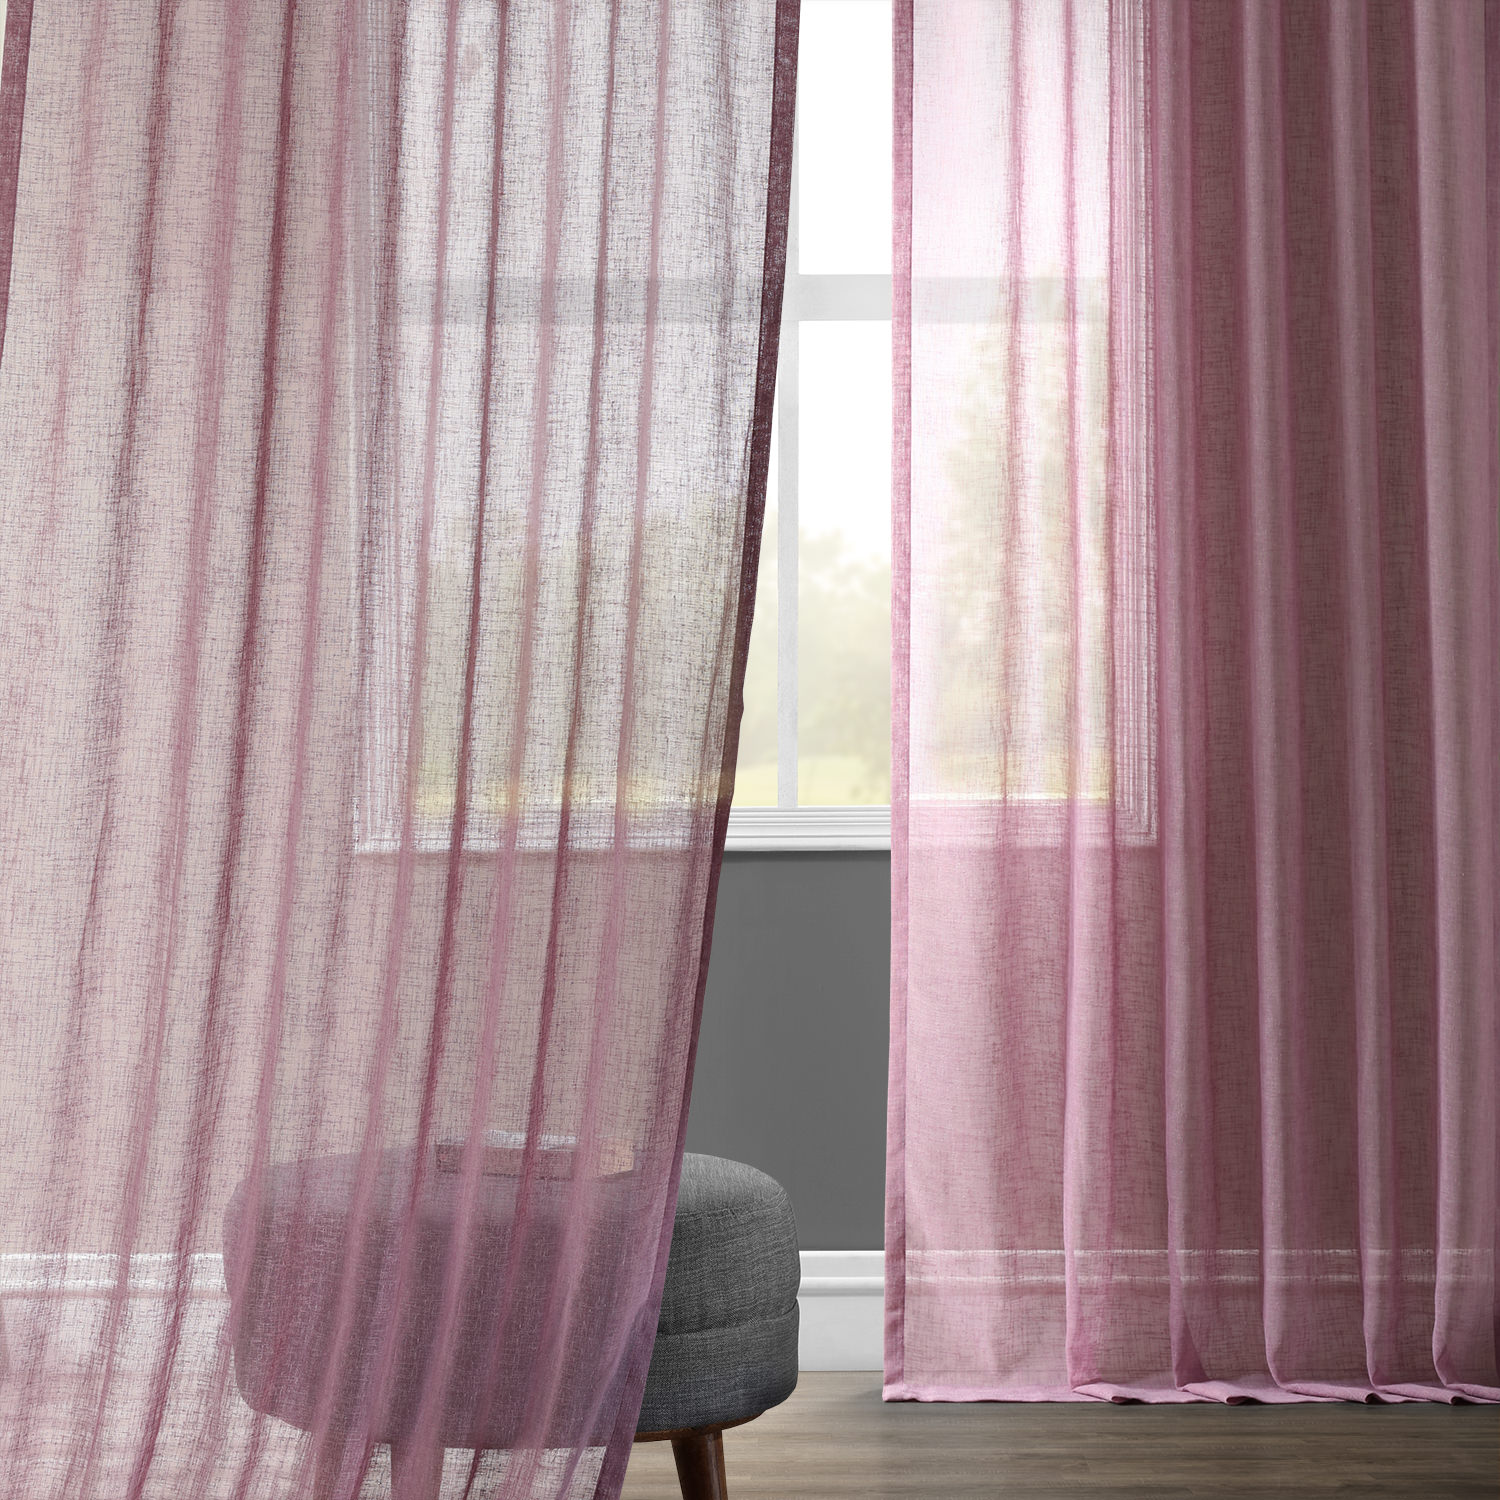 Lavender Sheer Curtains Blackberry Cream Solid Faux Linen Sheer Curtain